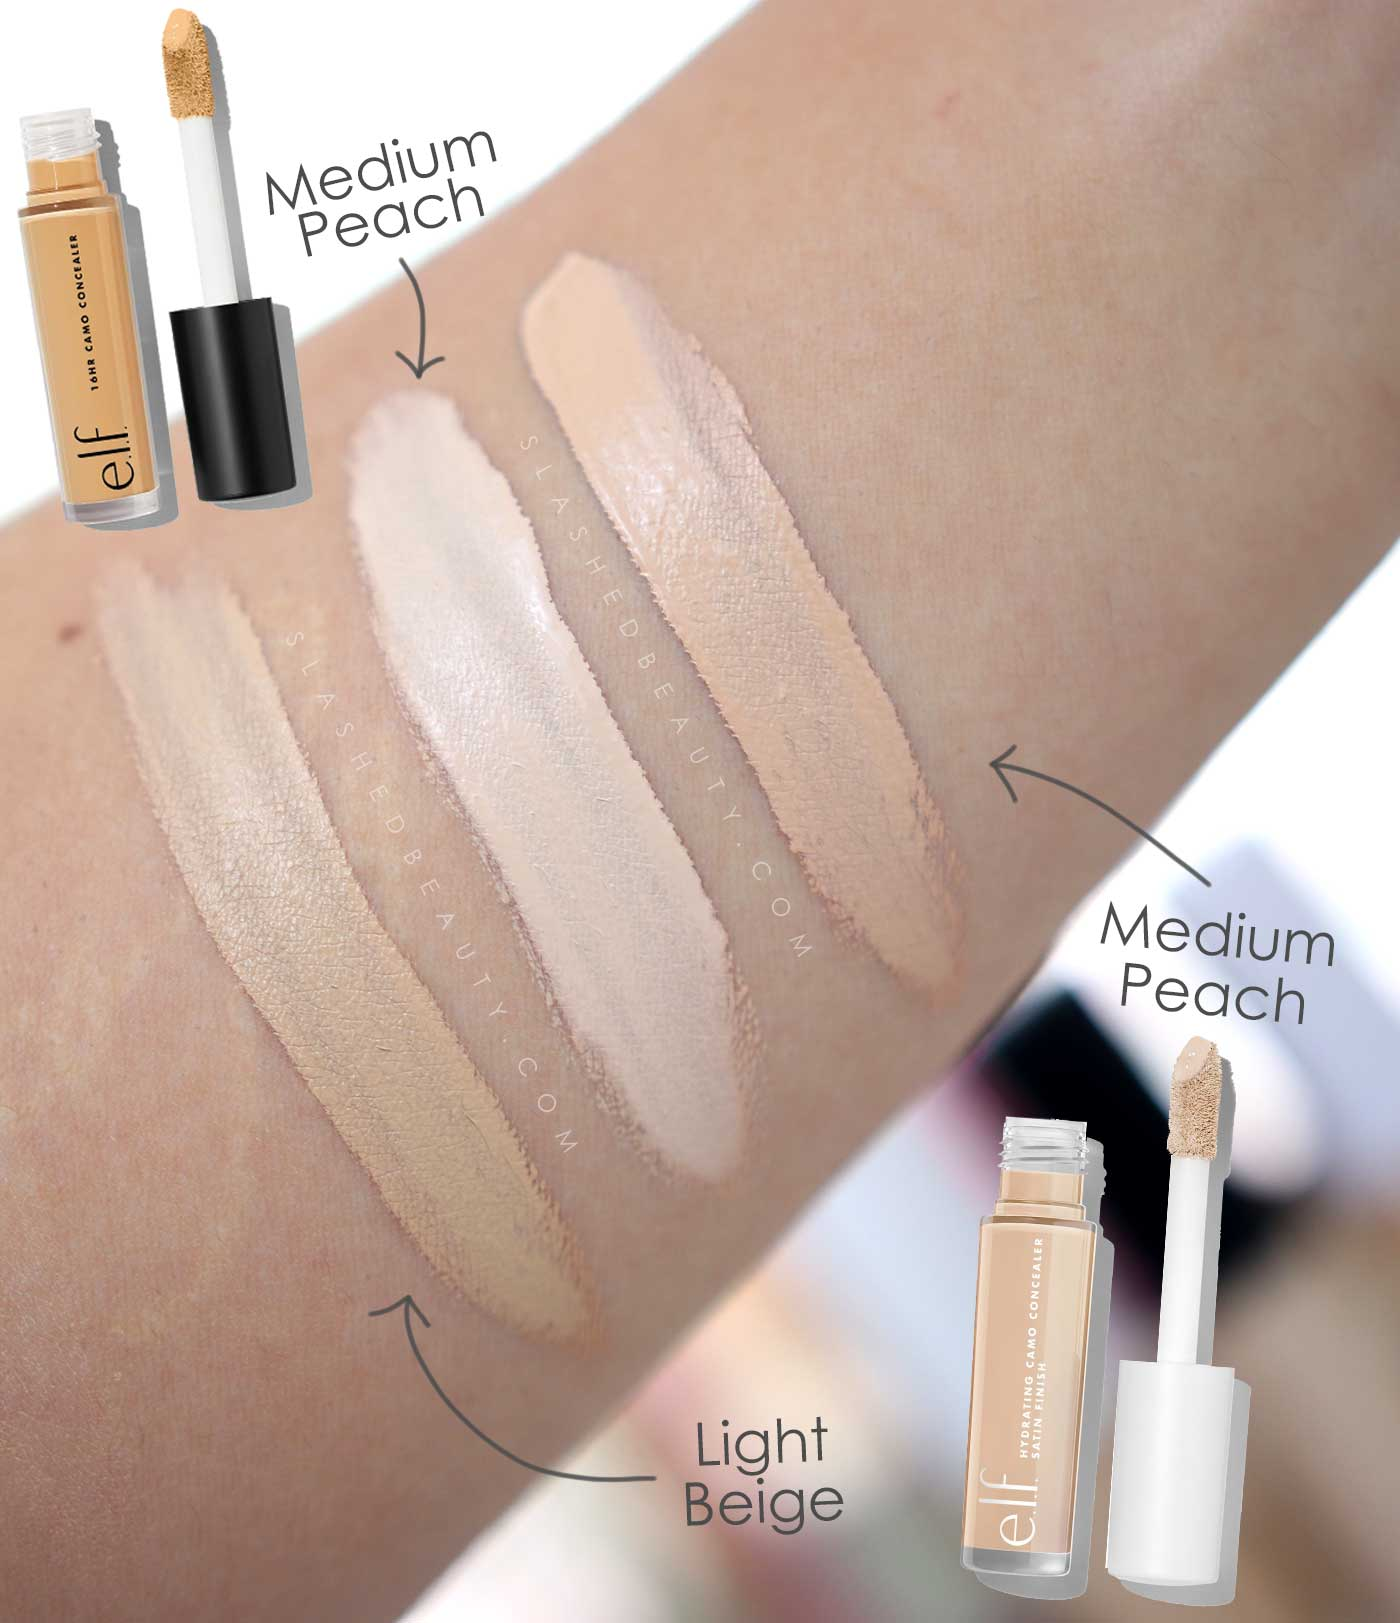 e.l.f. Hydrating Camo Concealer Review & Swatches | e.l.f. Camo Concealer Shade Comparison Medium Peach | Slashed Beauty